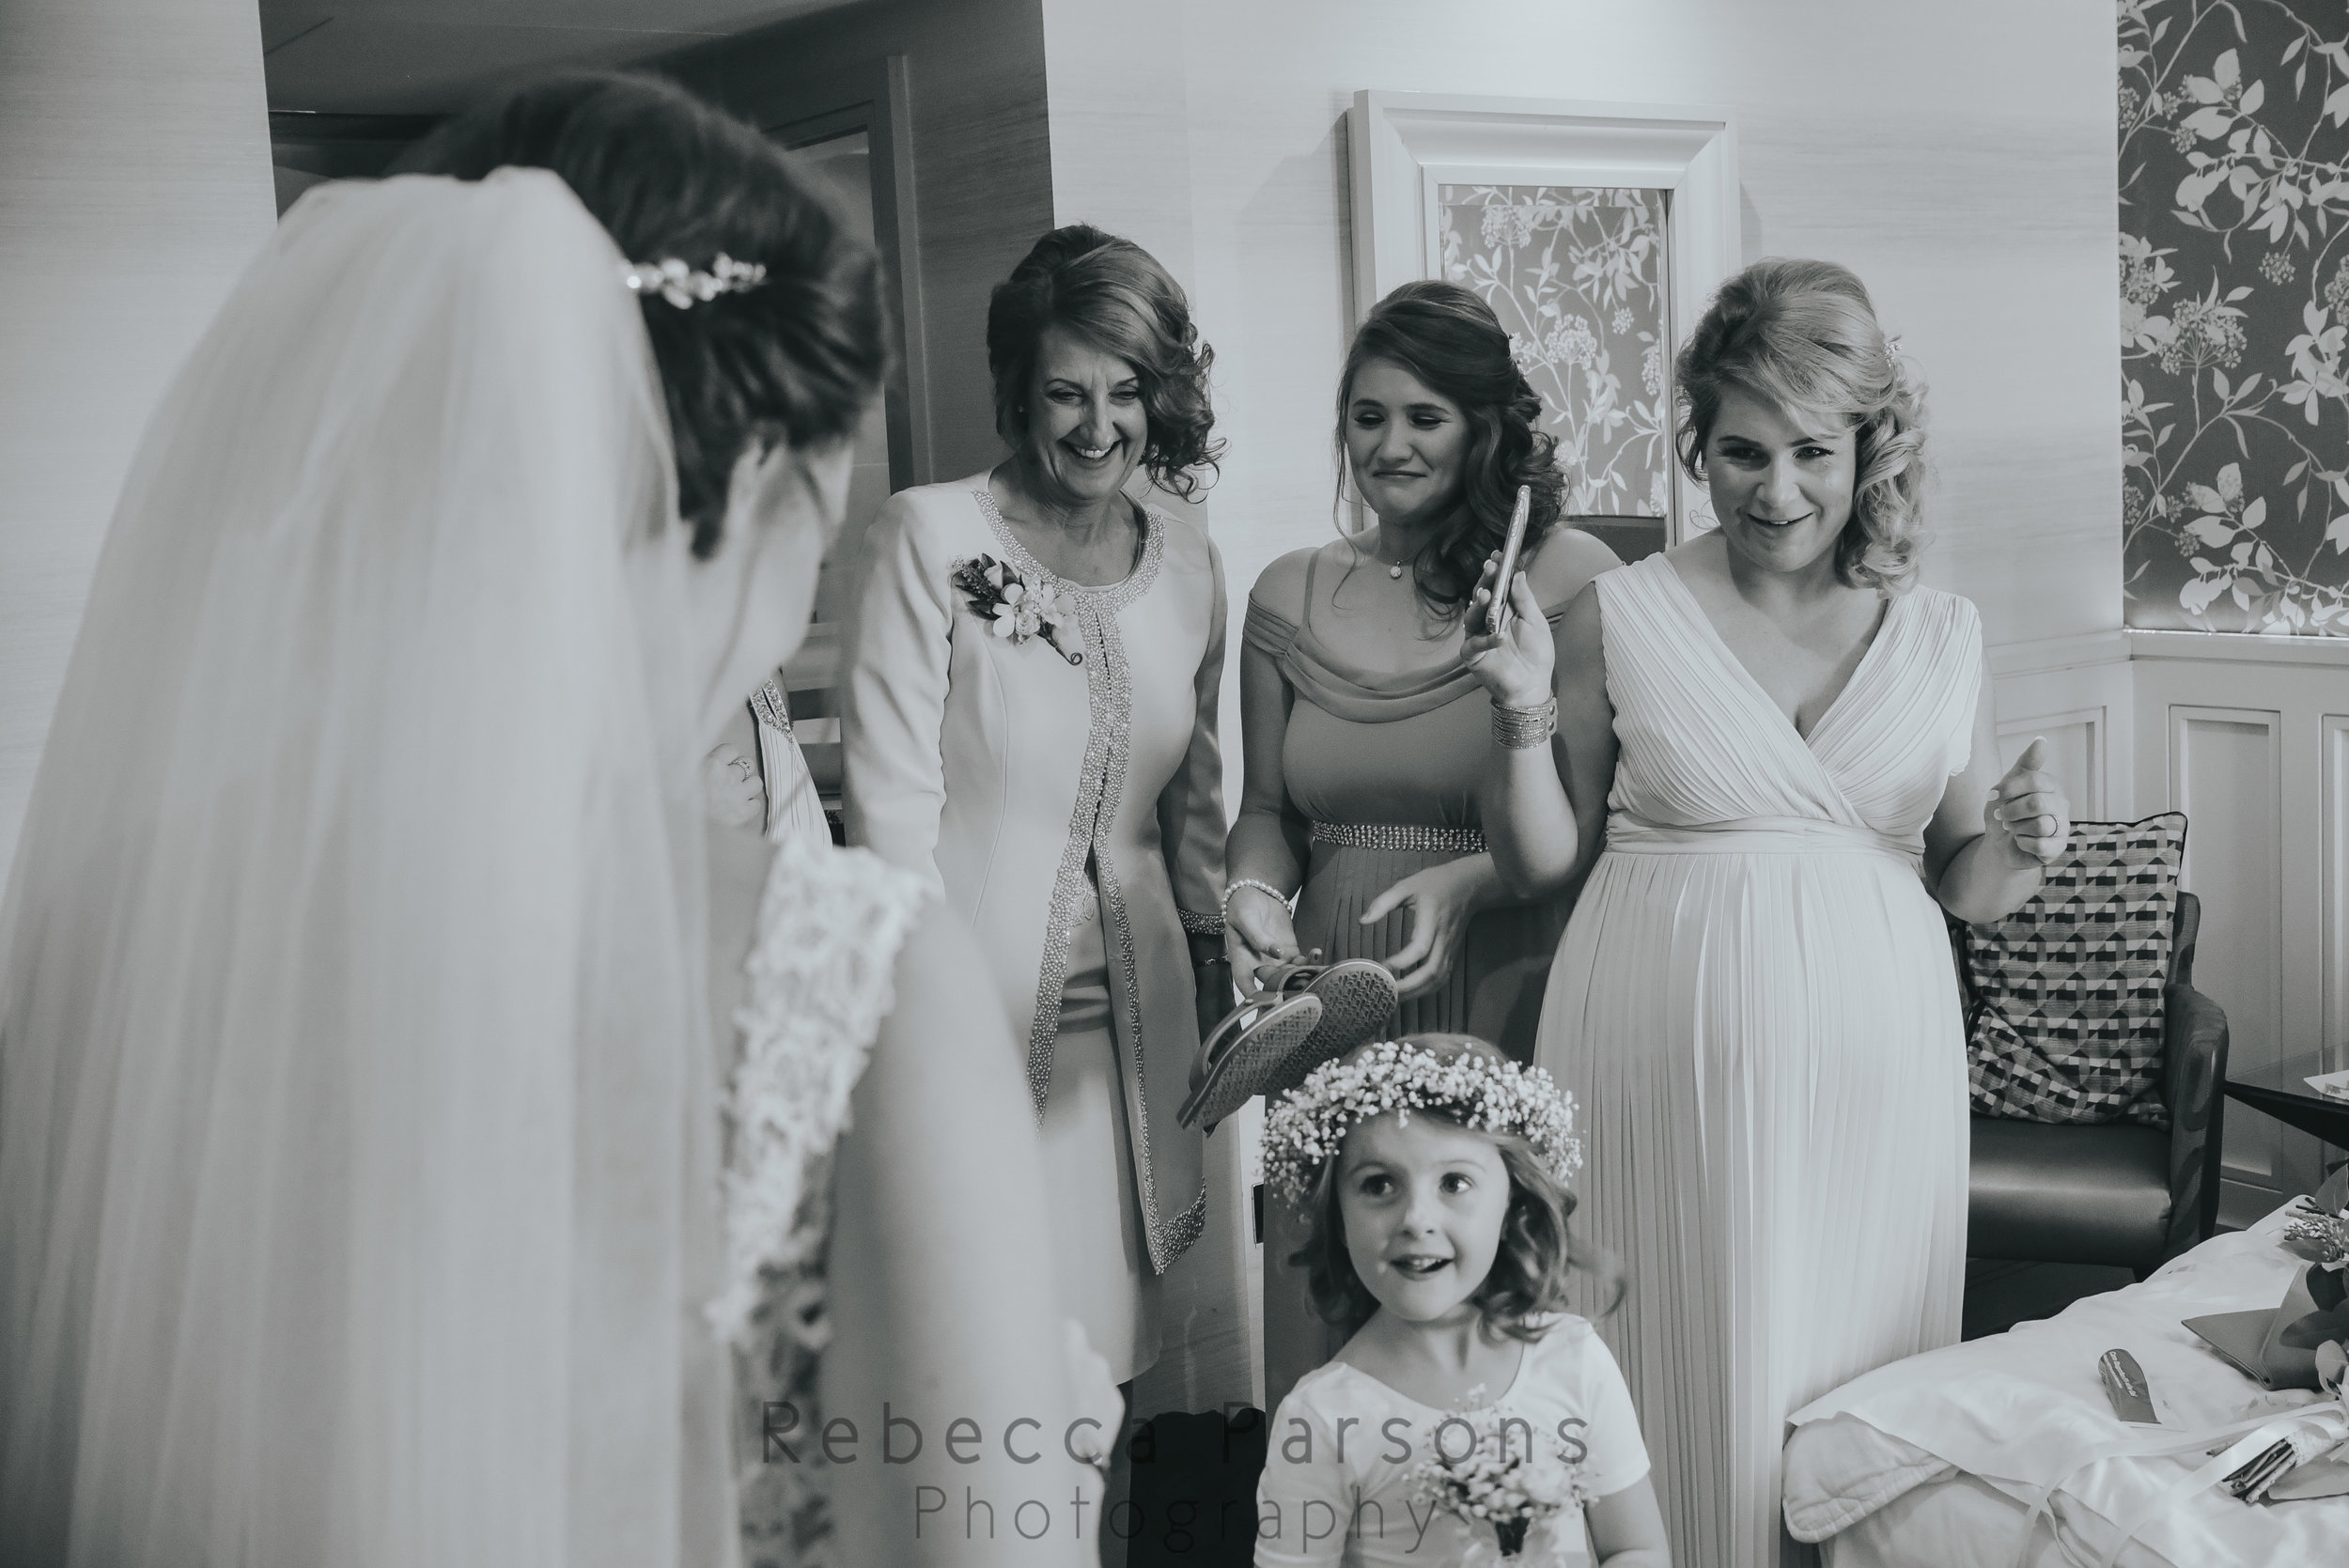 Bridal party seeing the bride in her dress for the first time